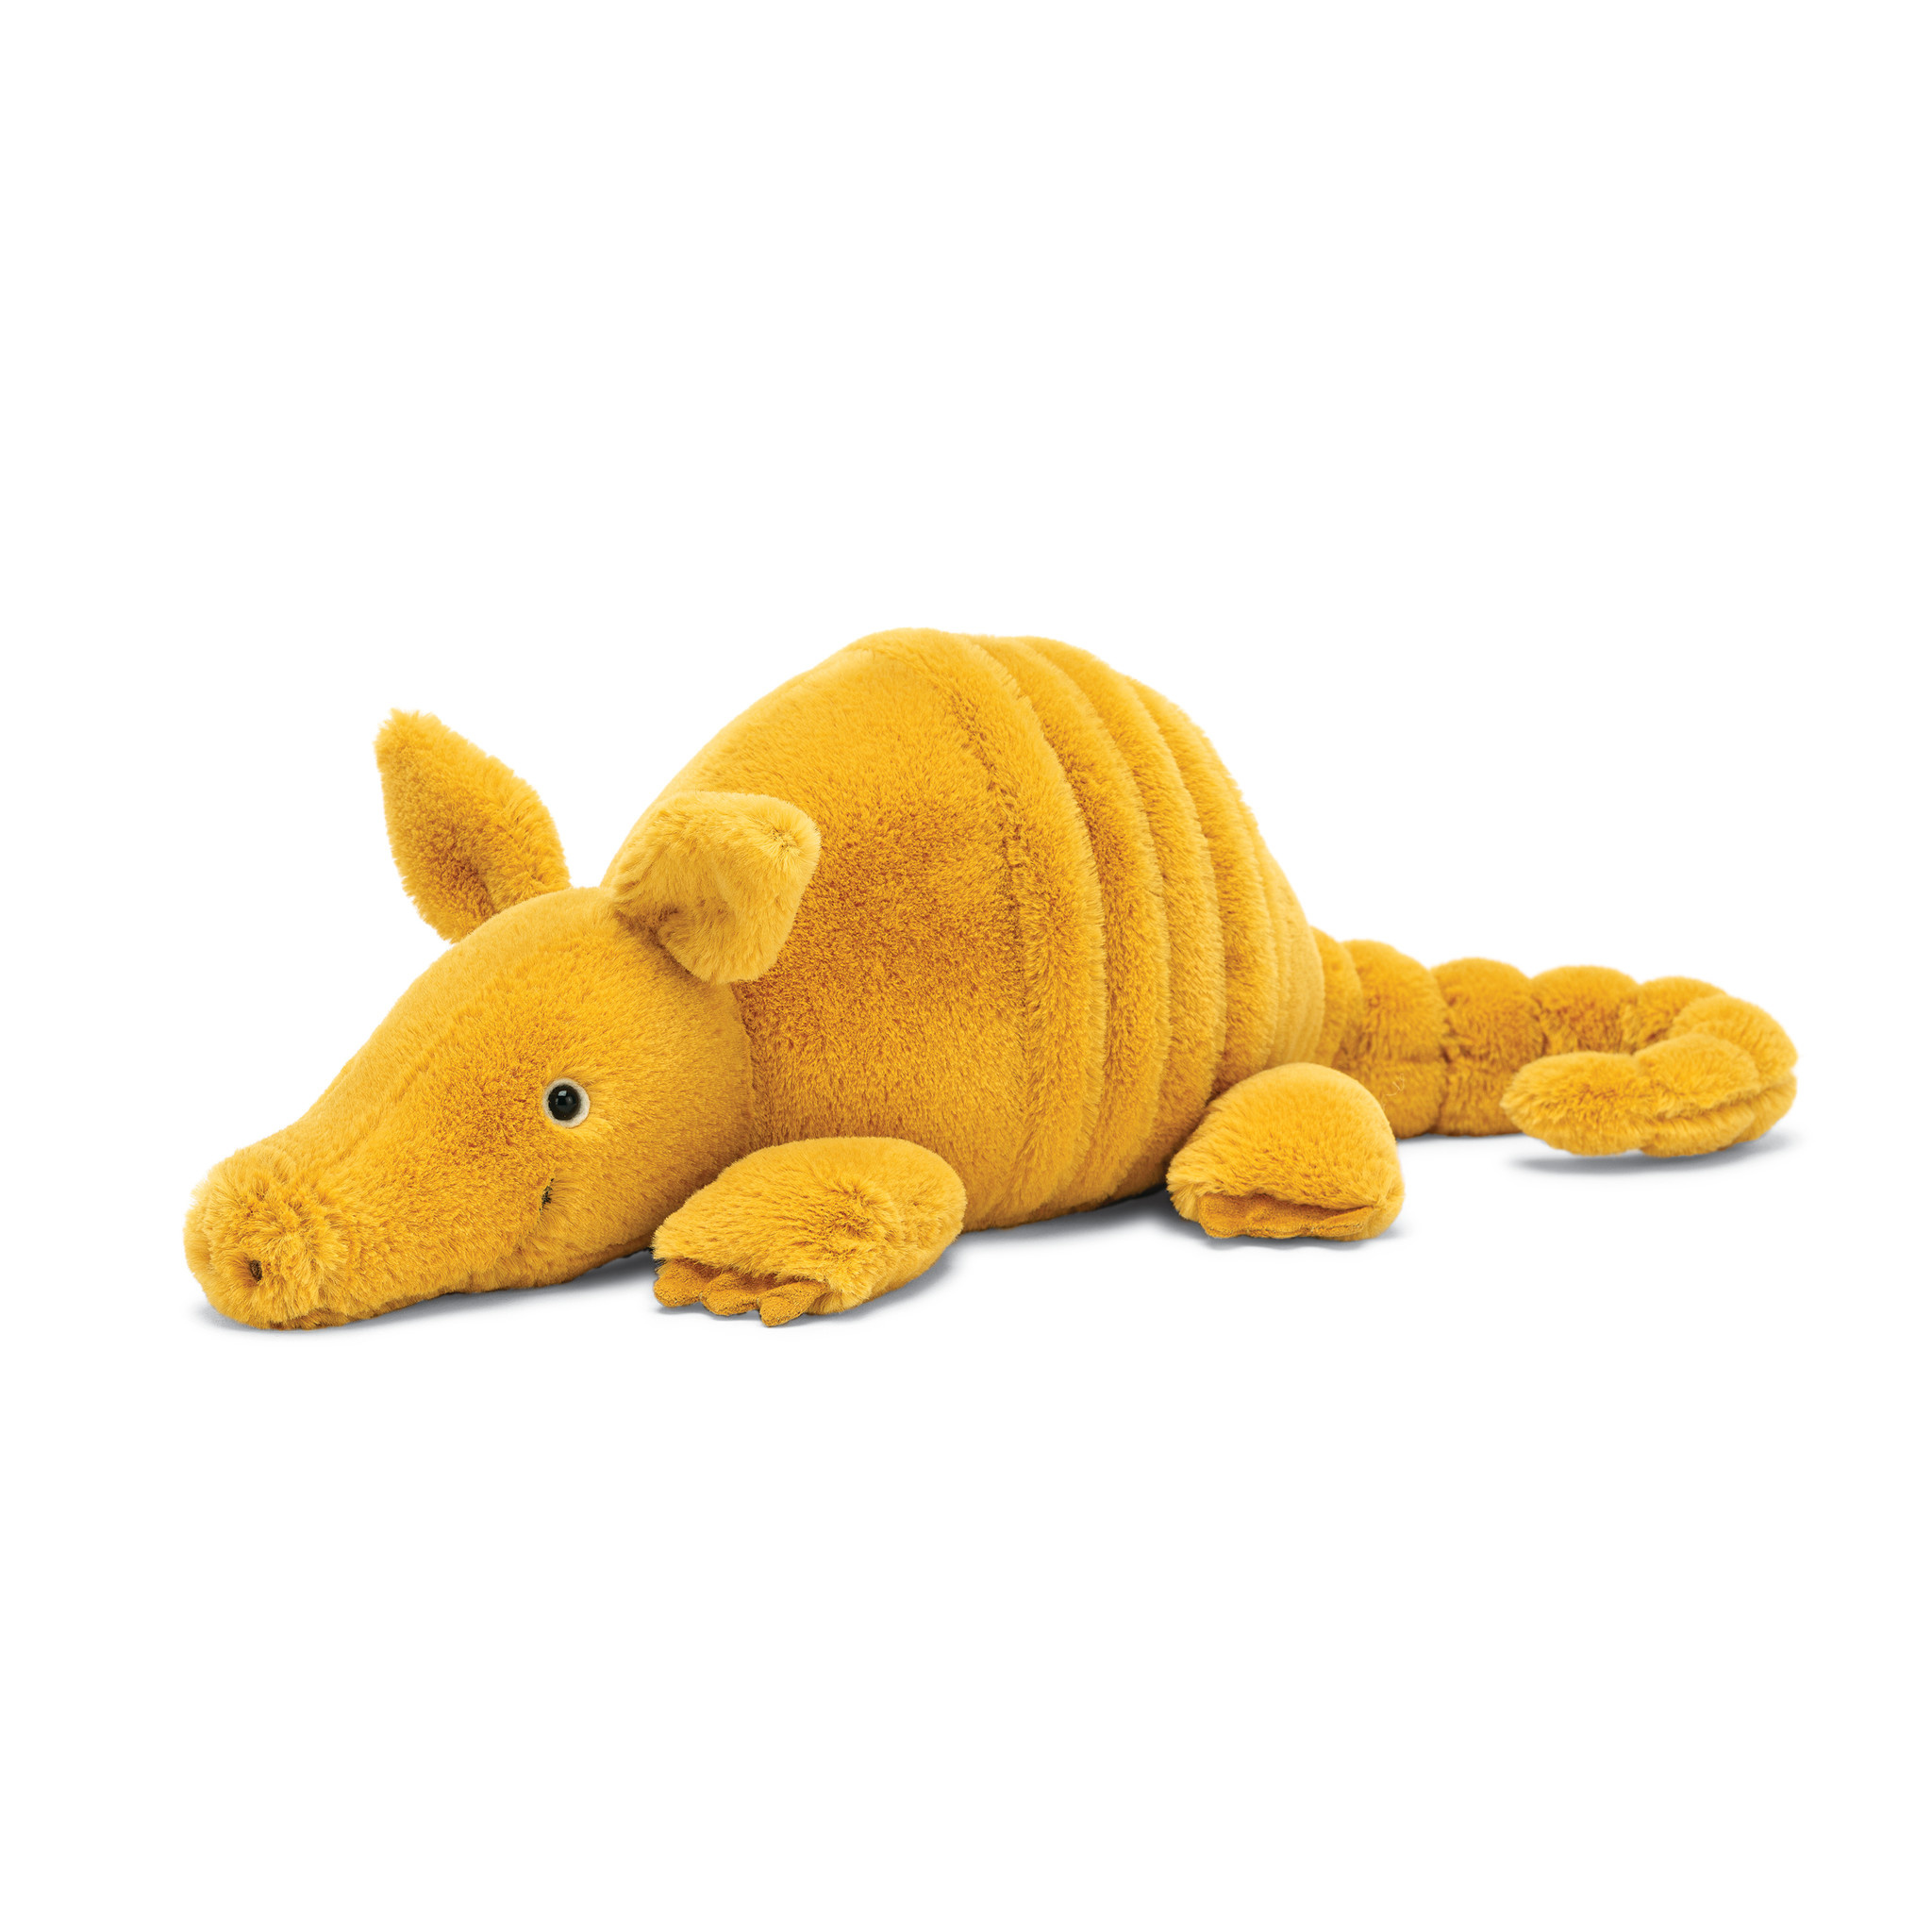 Jellycat Vividies Armadillo